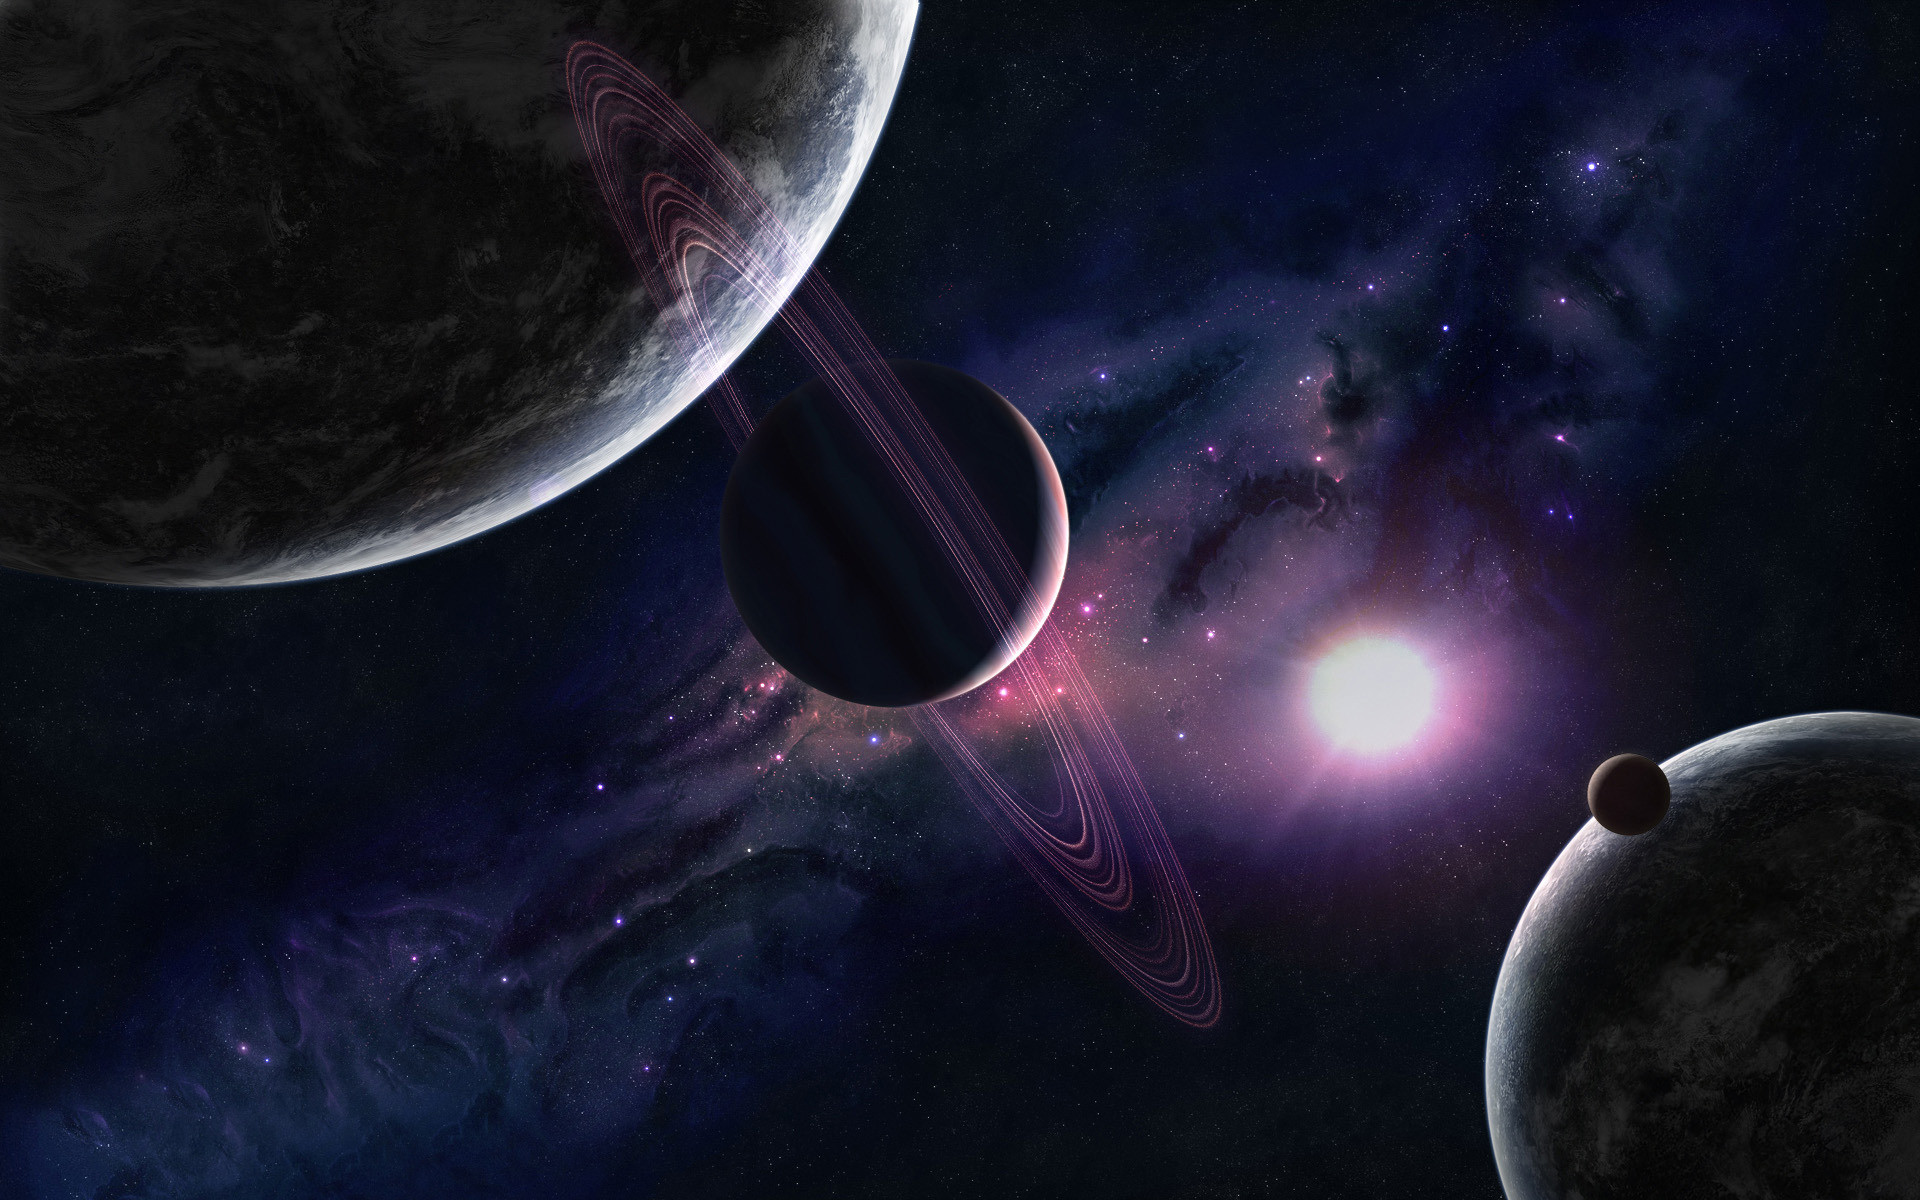 Solar system wallpapers 71 images - Solar system hd wallpapers 1080p ...